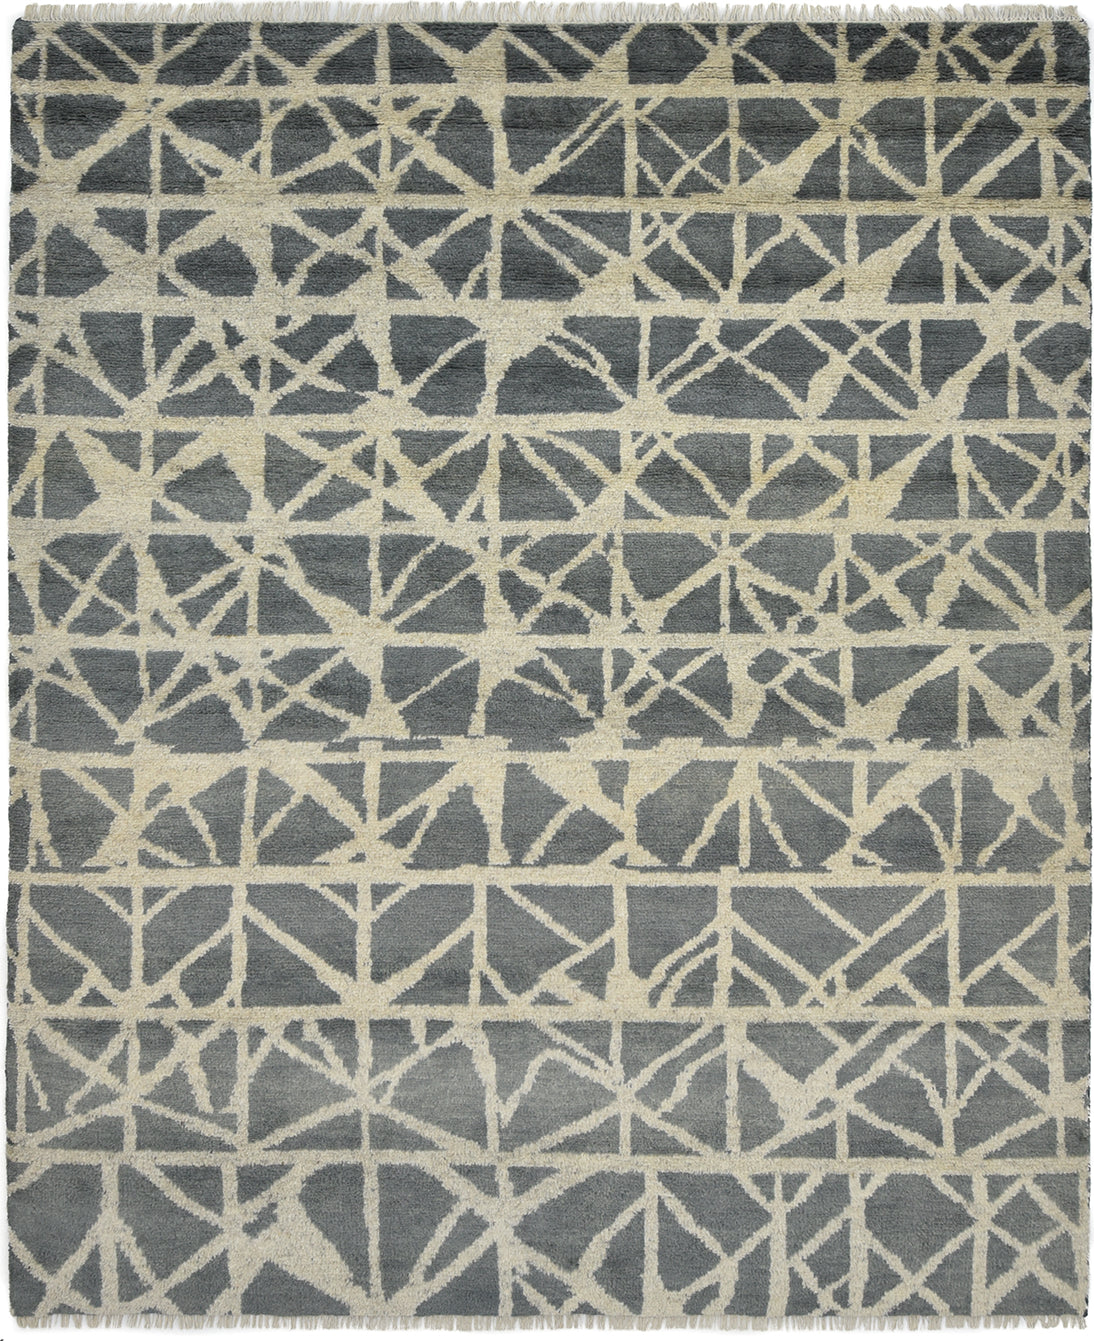 Solo Rugs Jankat M8081-183 Gray Area Rug main image